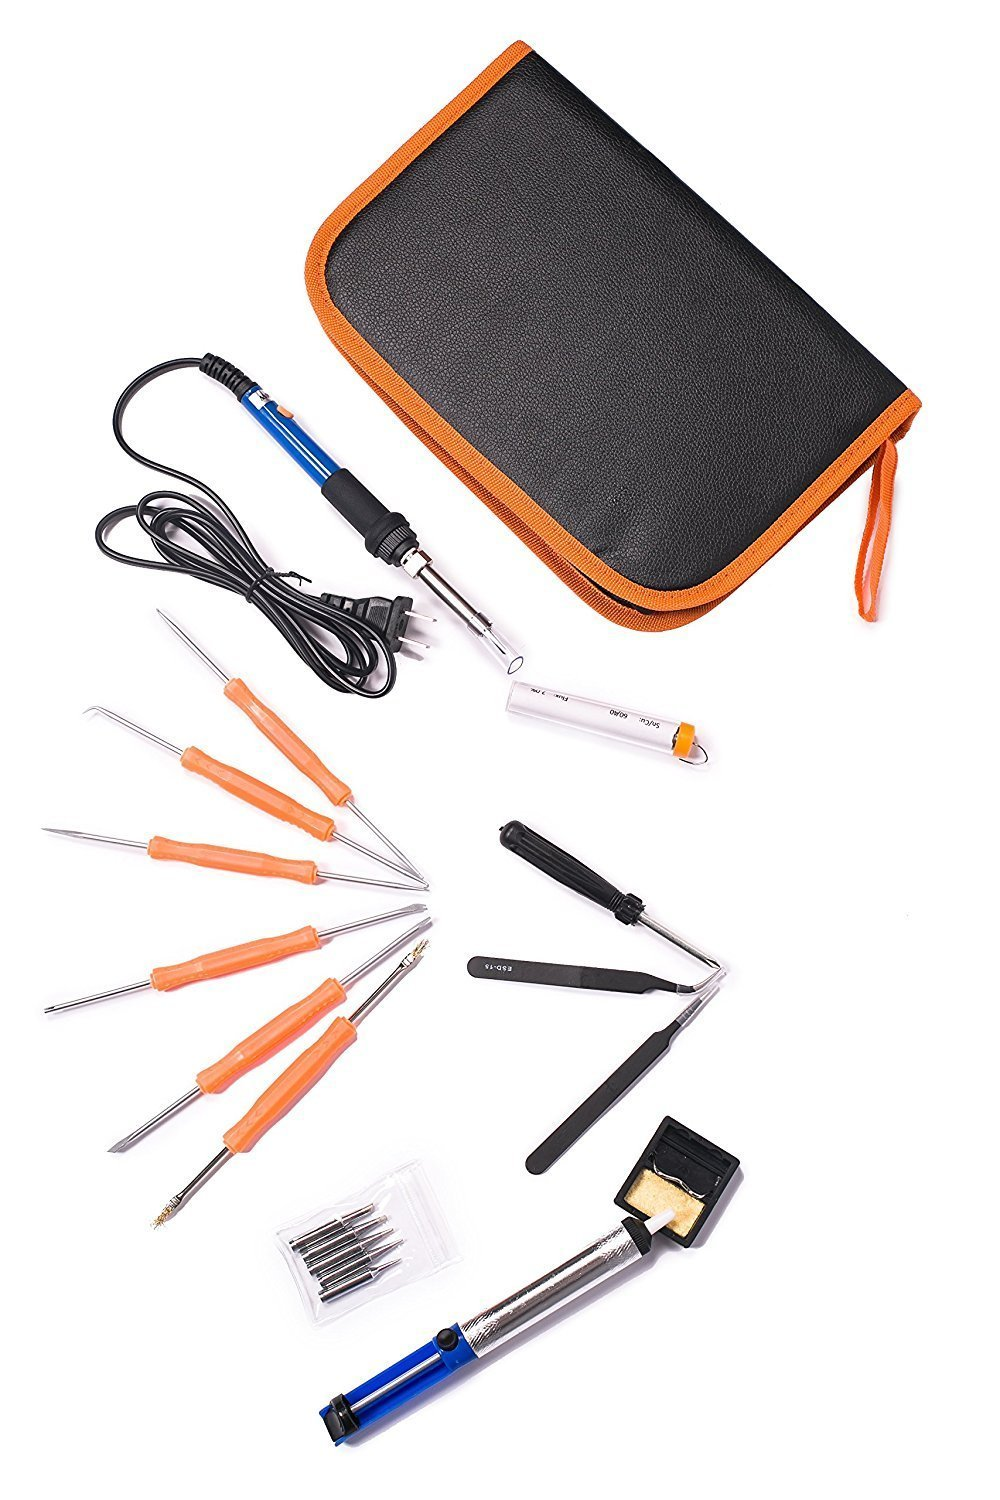 Electric Soldering Iron Kit ,Full Set 60W 110V with Adjustable Temperature Welding Iron, 5pcs Tips, Desoldering Pump, 2pcs Tweezers, Tin Wire Tube, Stand and 6pcs Aid Tools in PU Carry Bag by Thee-home (Image #6)